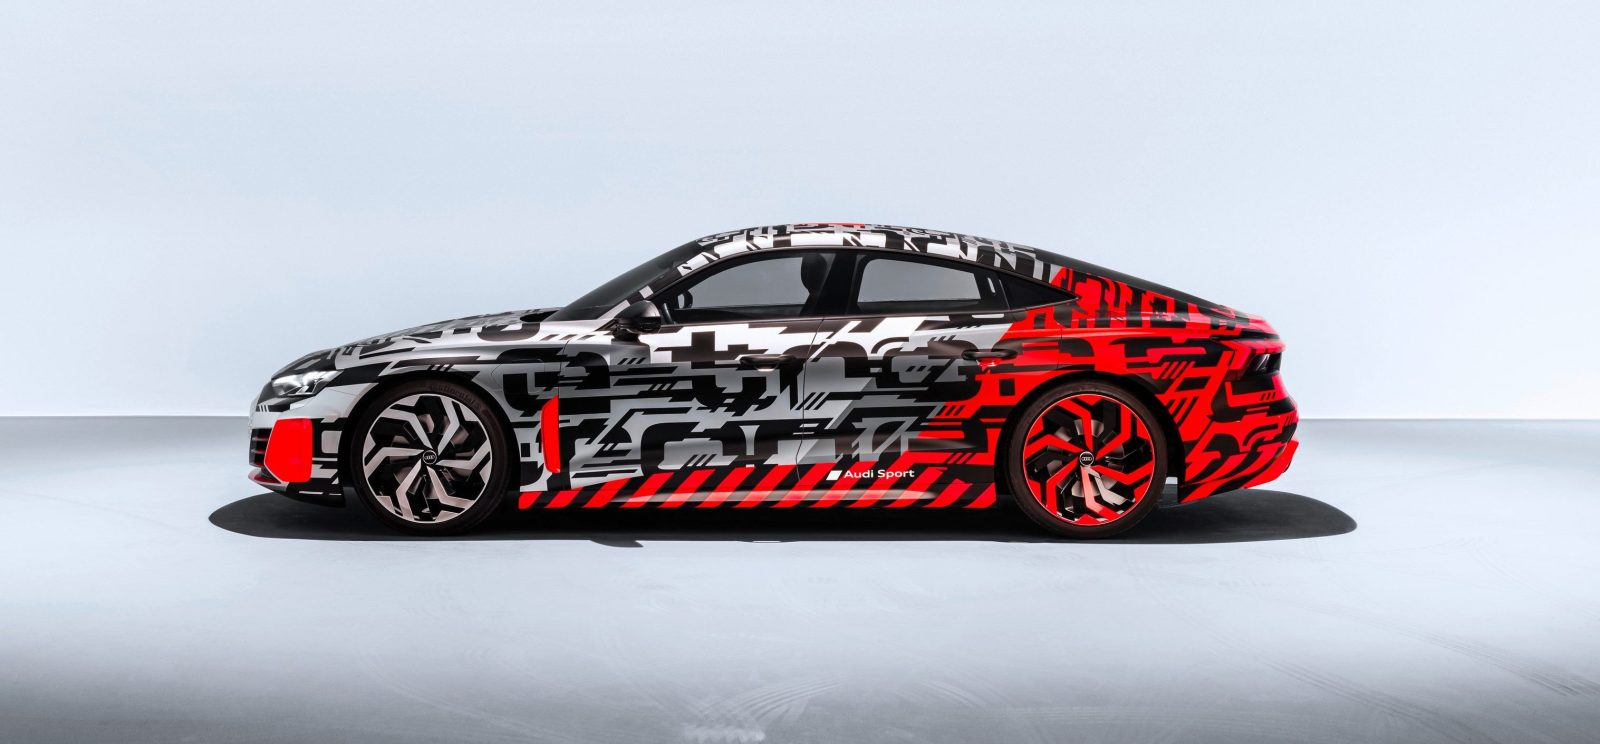 d3d0a12af7c Audi unveils e-tron GT all-electric performance car (in camo) ahead of  launch